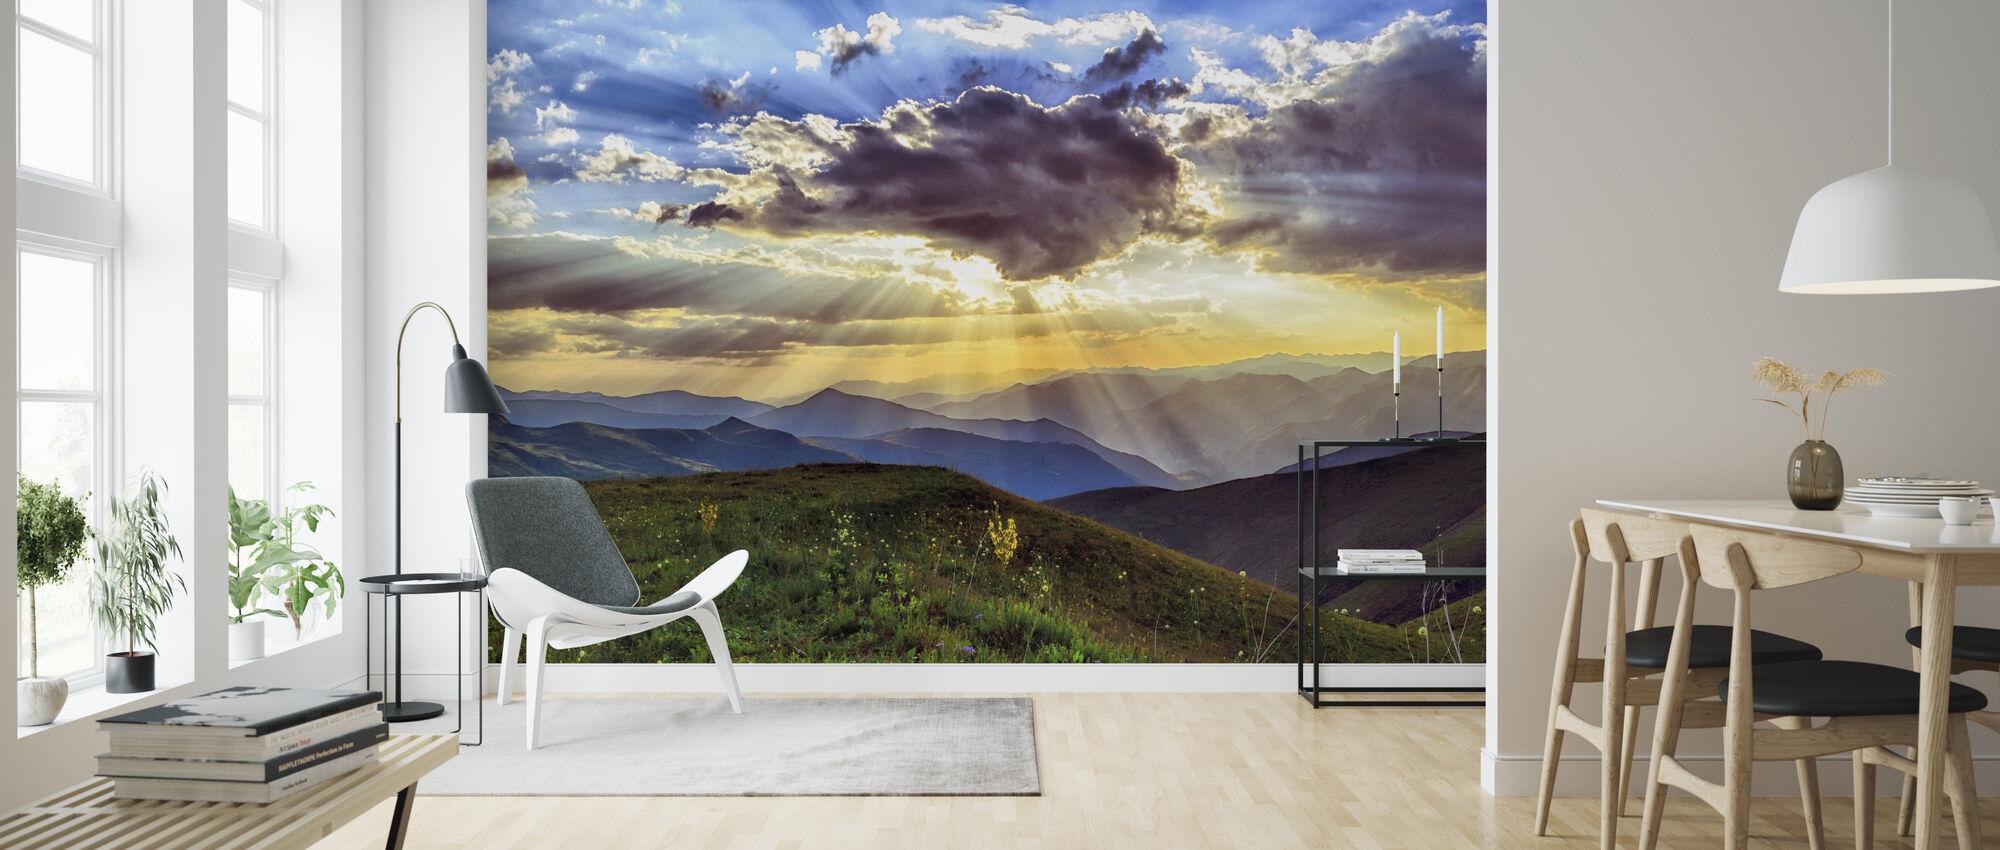 Highland Sunset - Wallpaper - Living Room